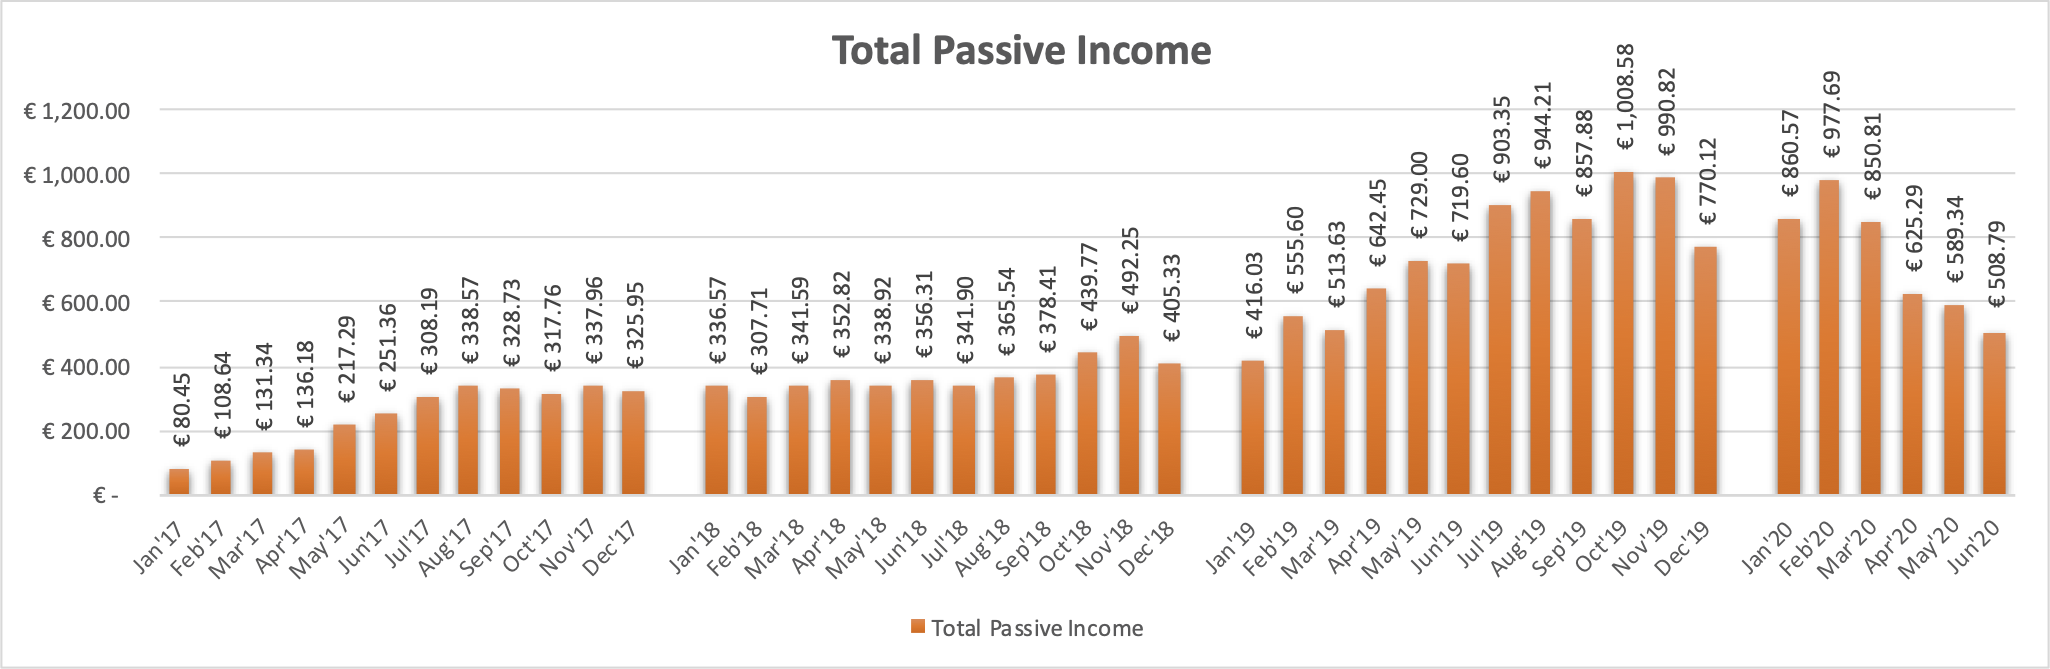 Total Passive Income from P2P Lending, P2P Real Estate Lending, ETF Dividends and Stock Sales.